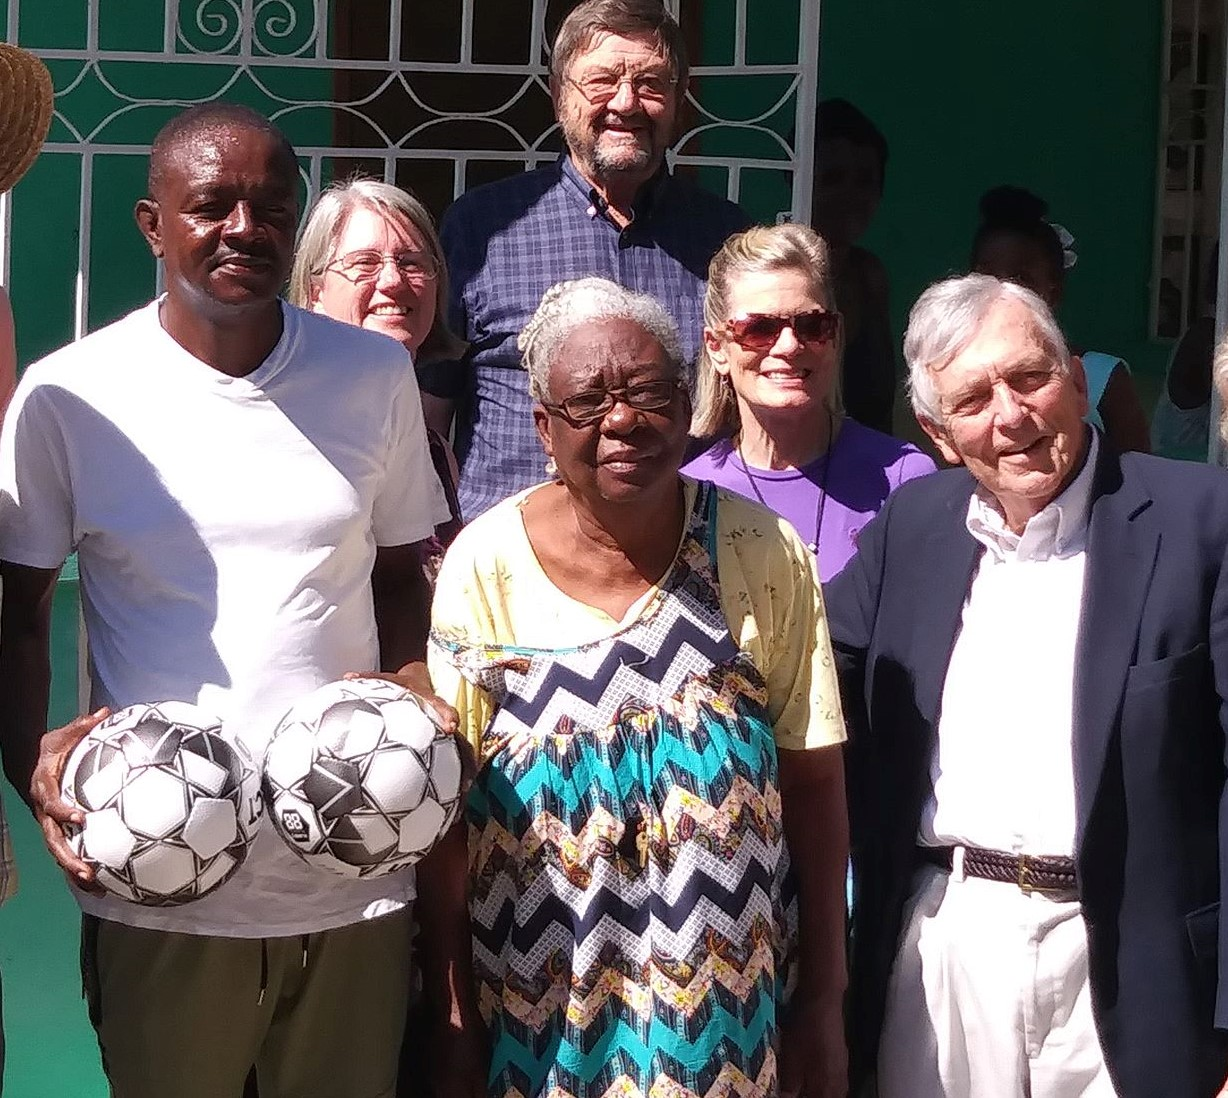 Hayes in Haiti, 2019